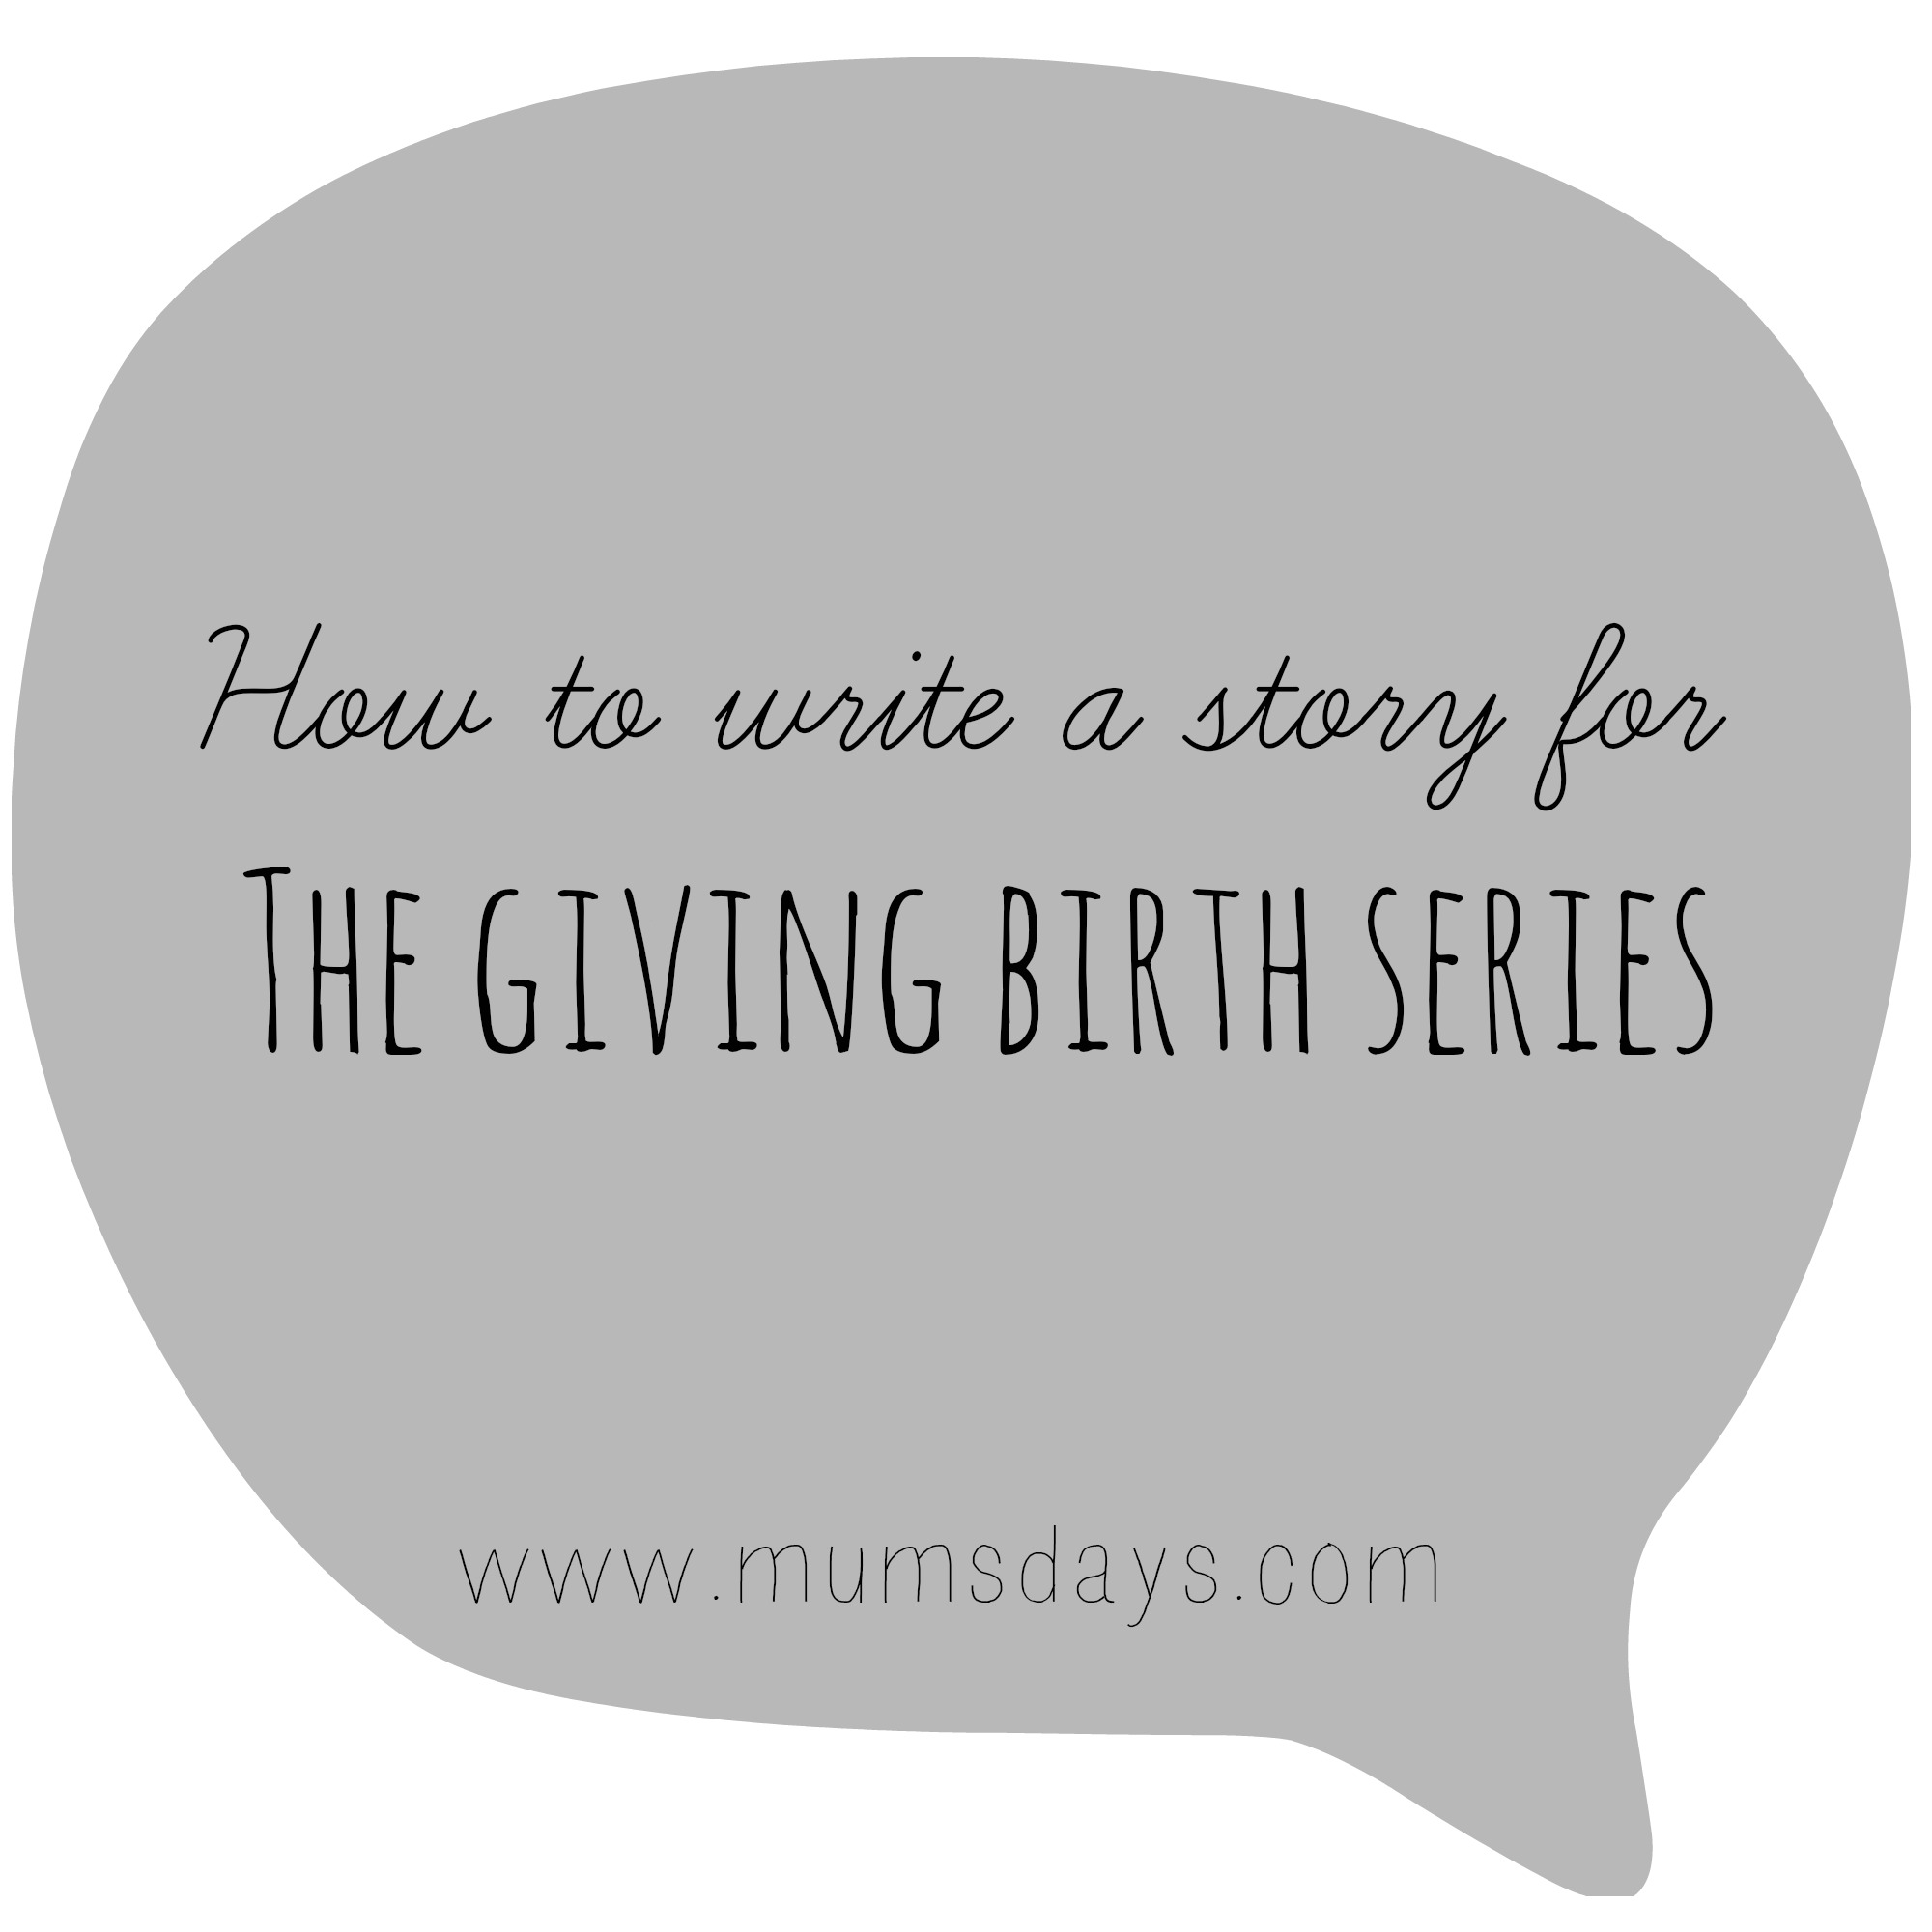 How to write a story for the giving birth series